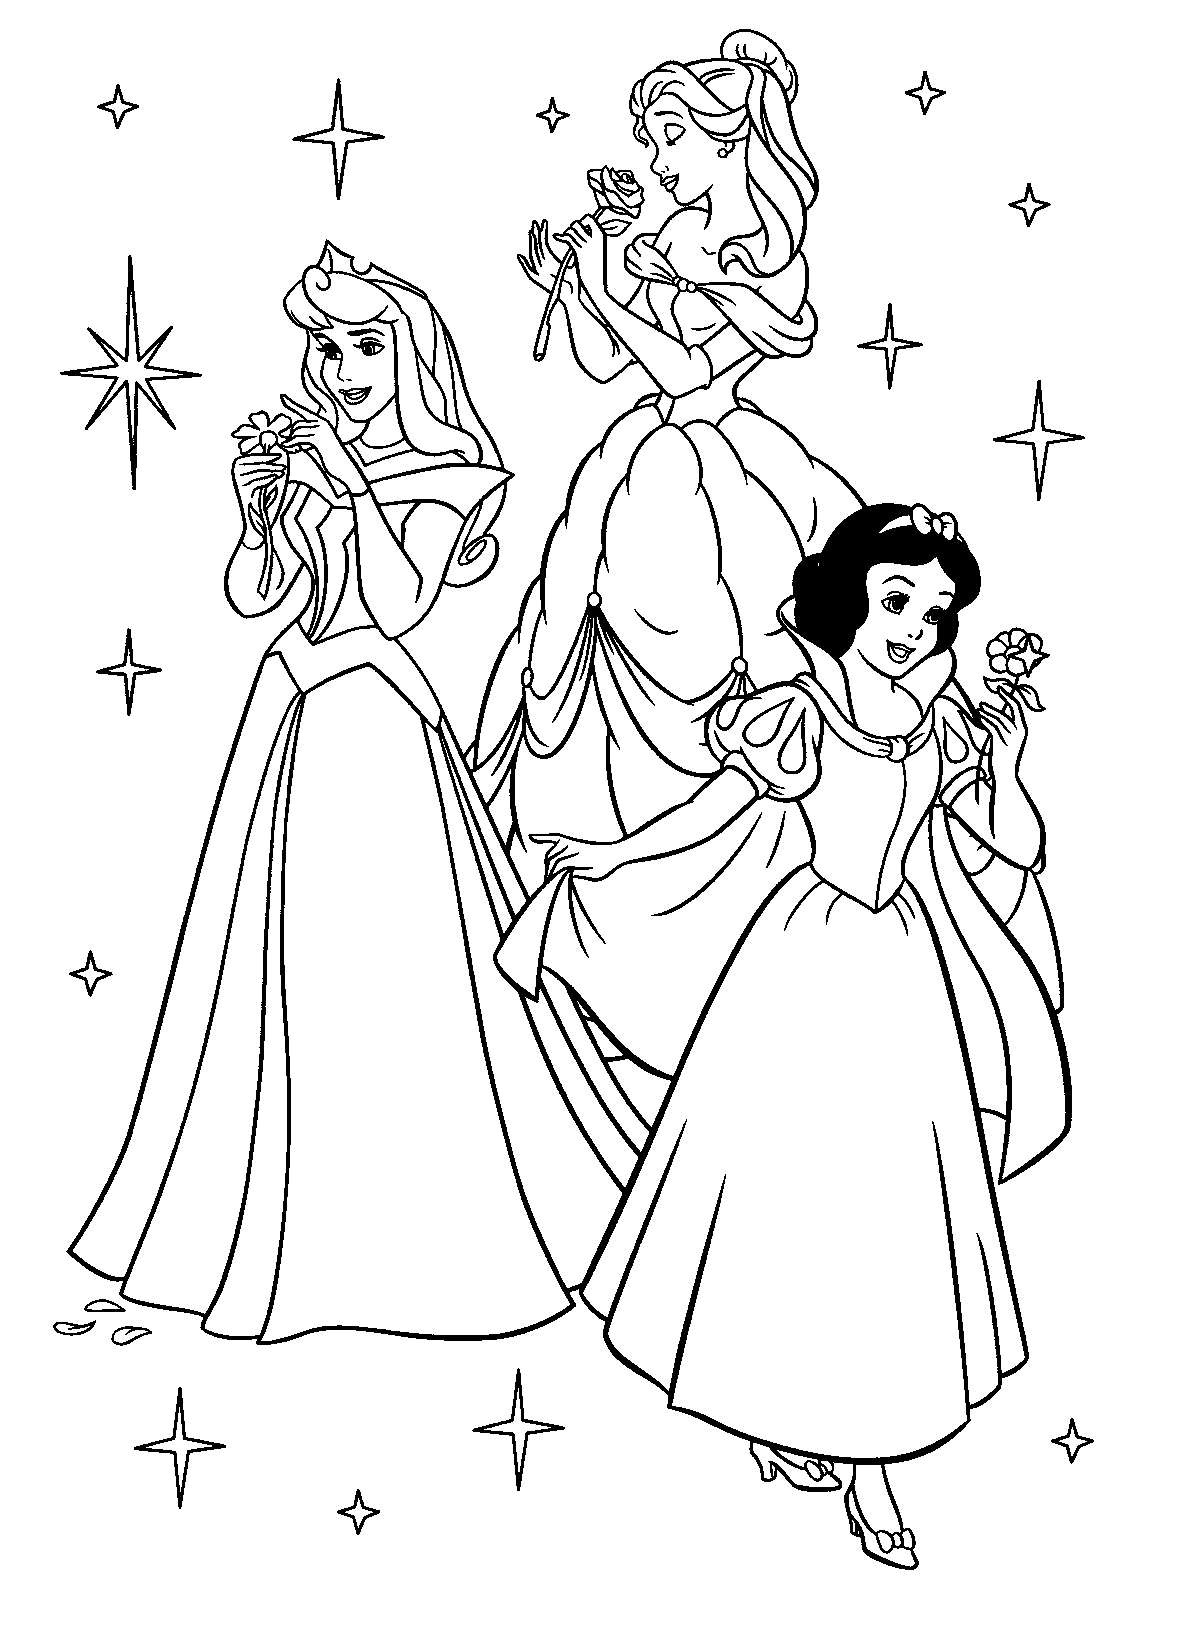 Free color pages princess - Disney Princess Coloring Pages